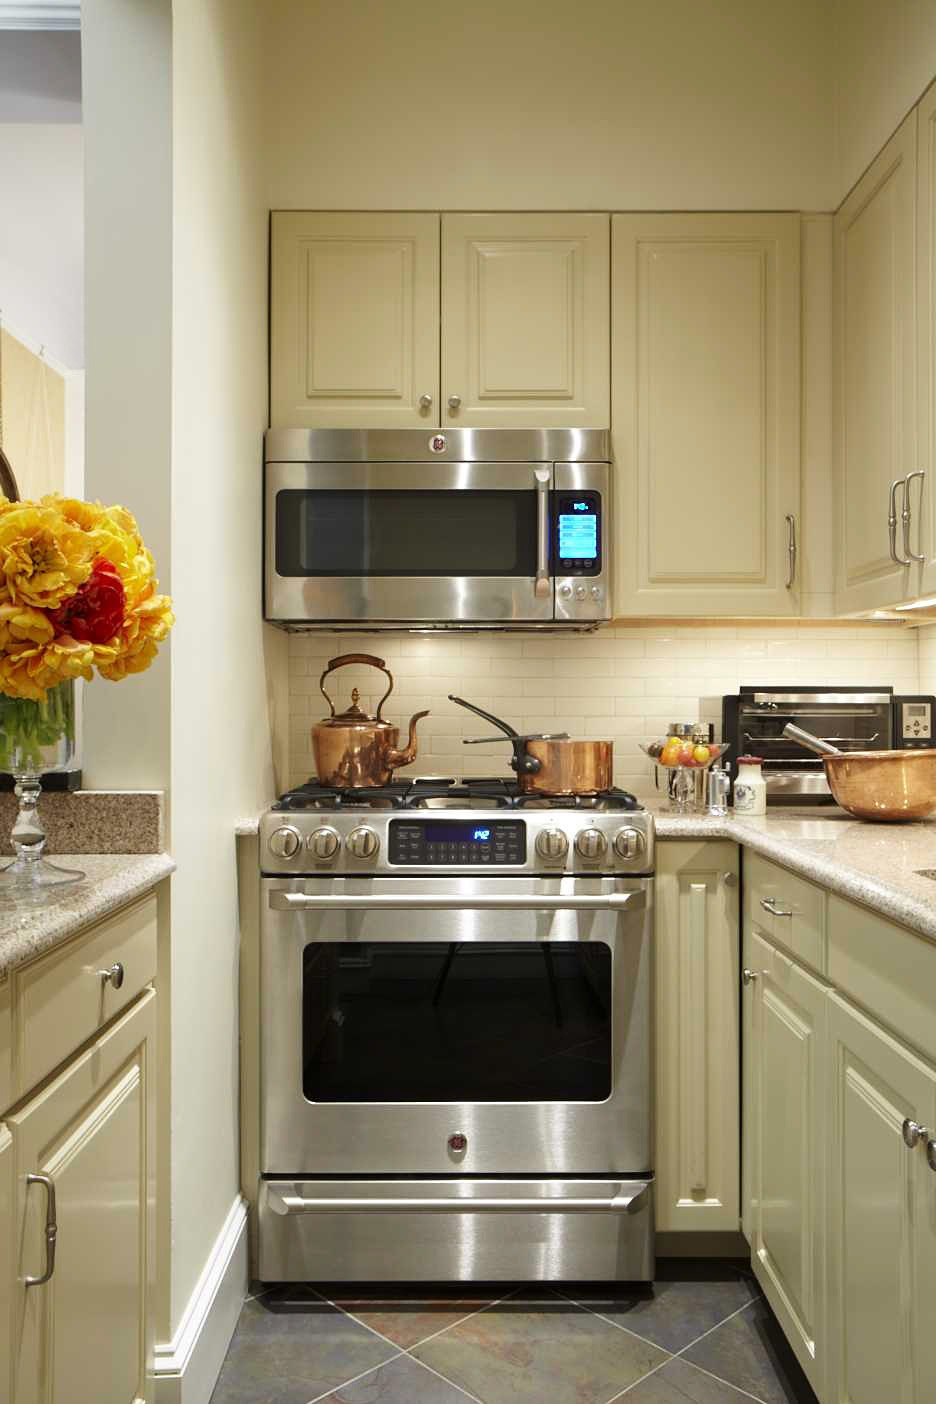 Kitchen Renovation Trends for 2015 - Quicken Loans Zing Blog